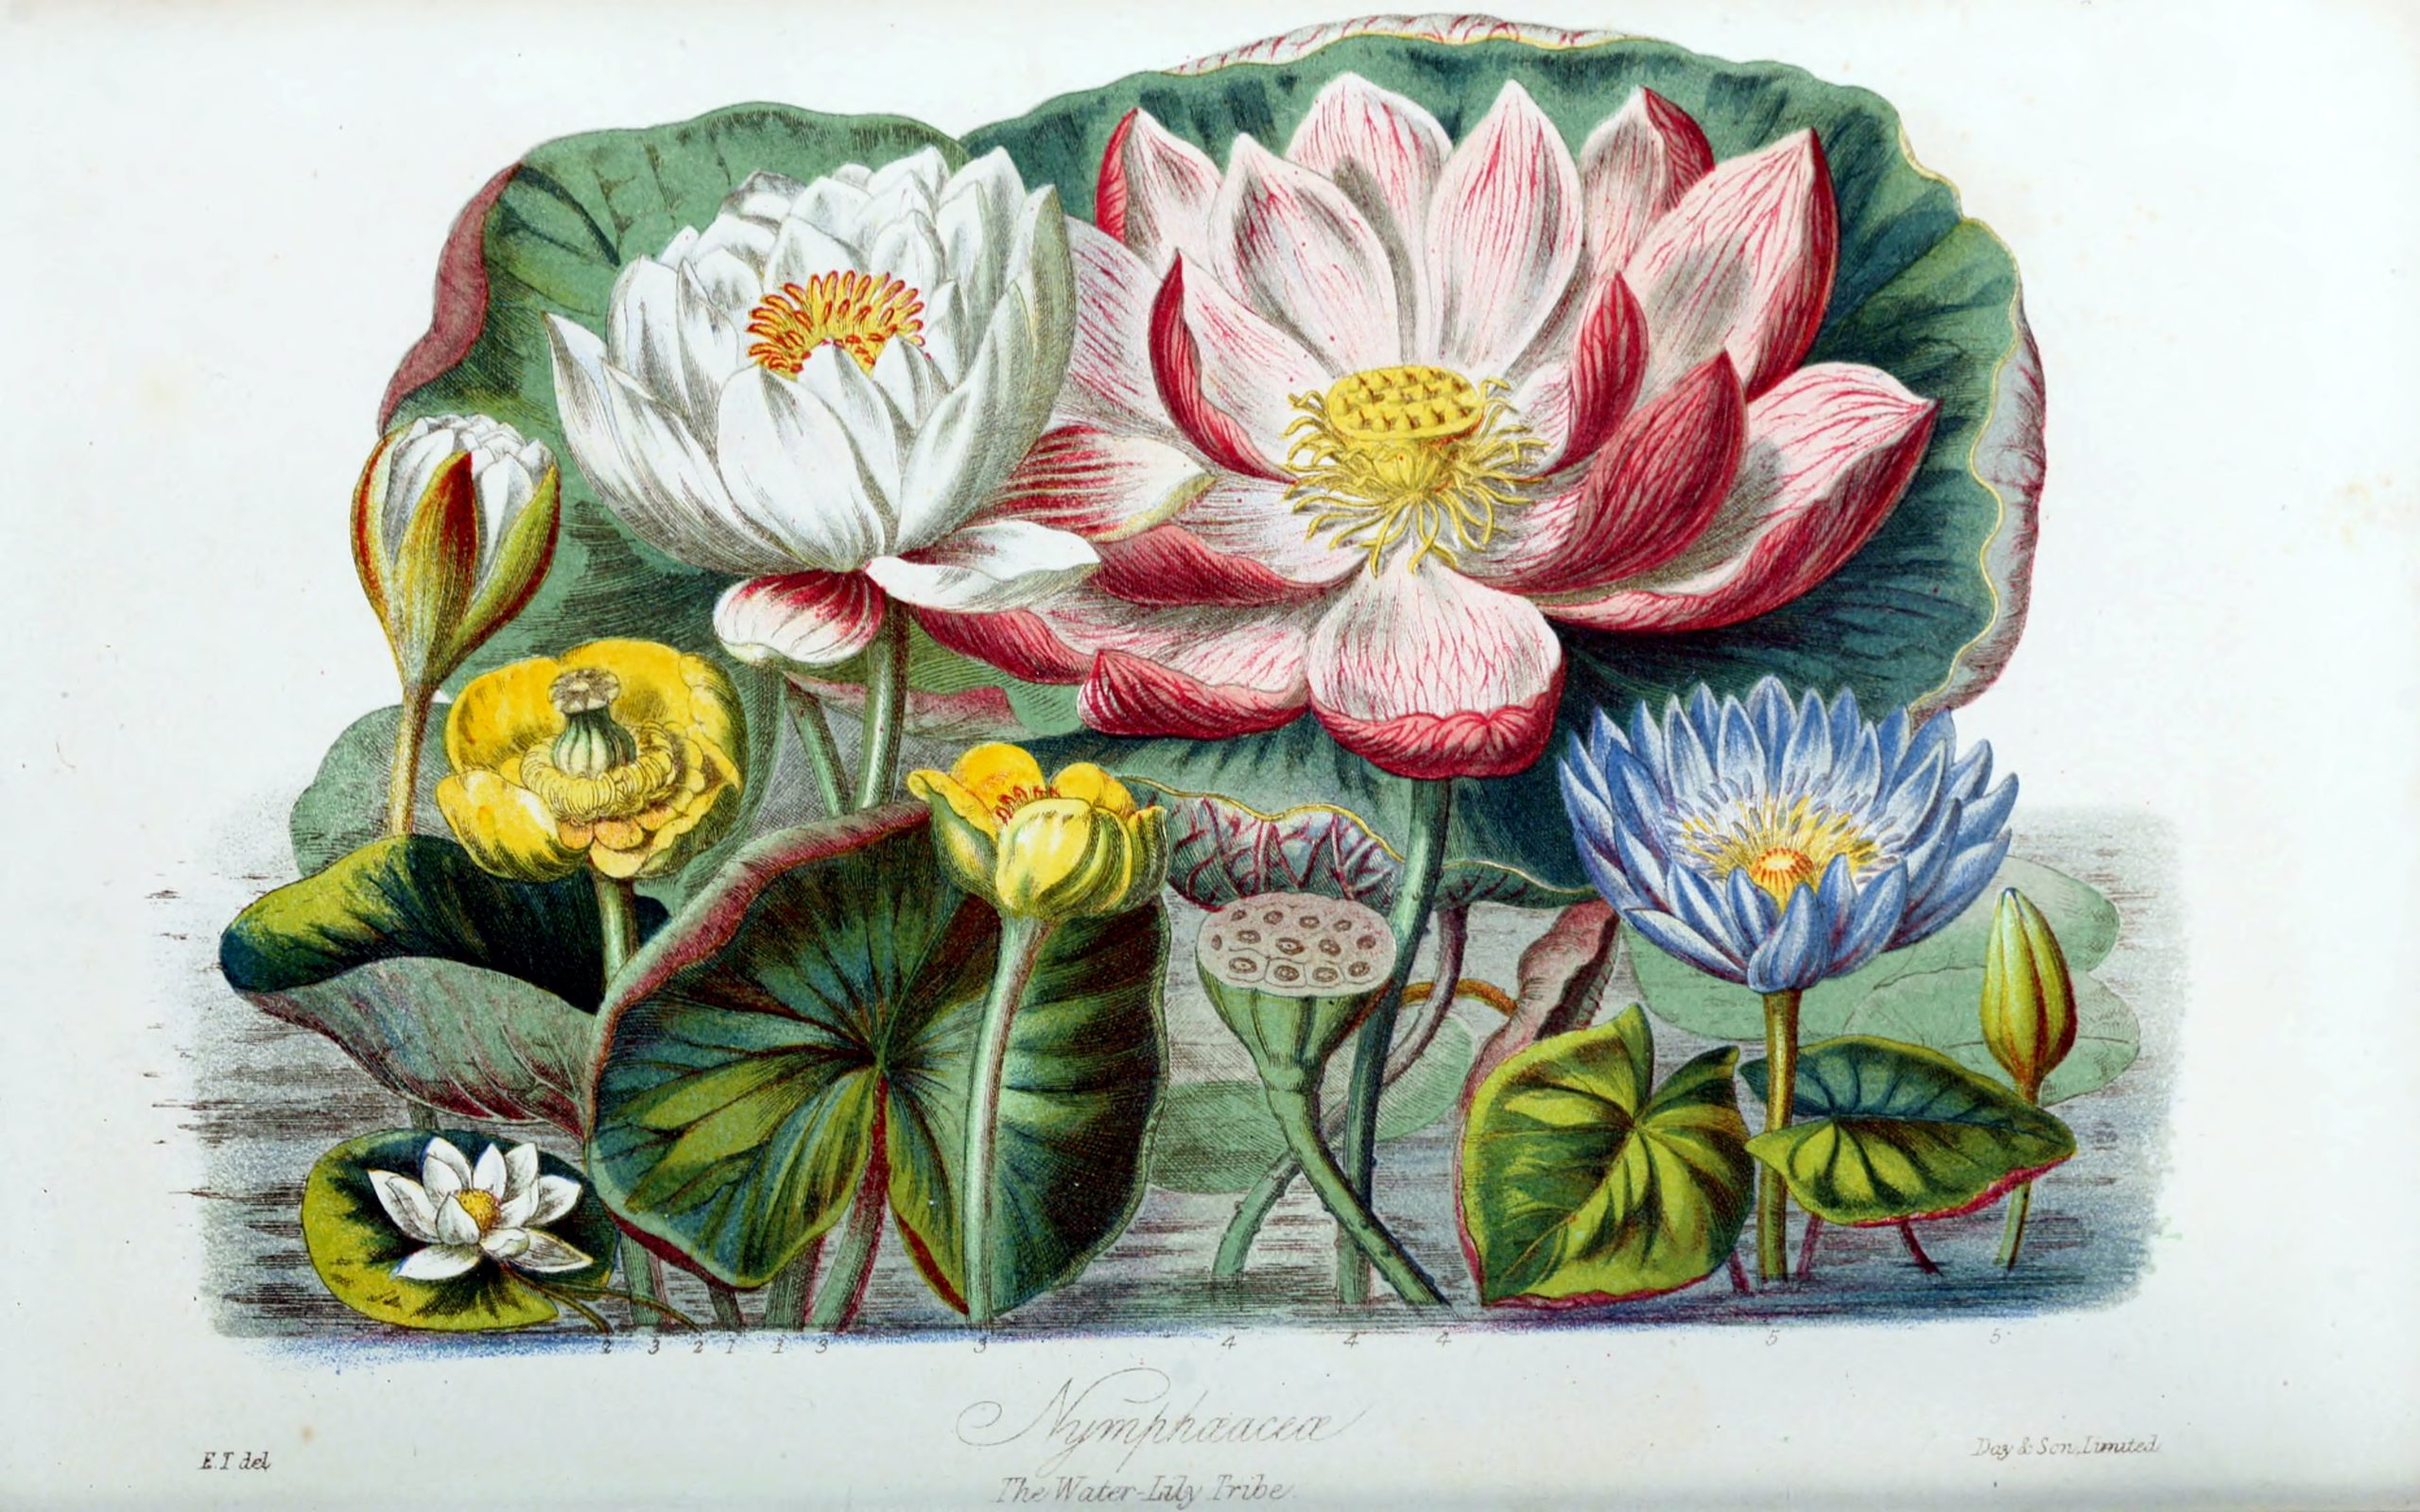 Vintage Botanical Prints - 38 in a series - Nympheacea from from Illustrations of the natural orders of plants (1868)